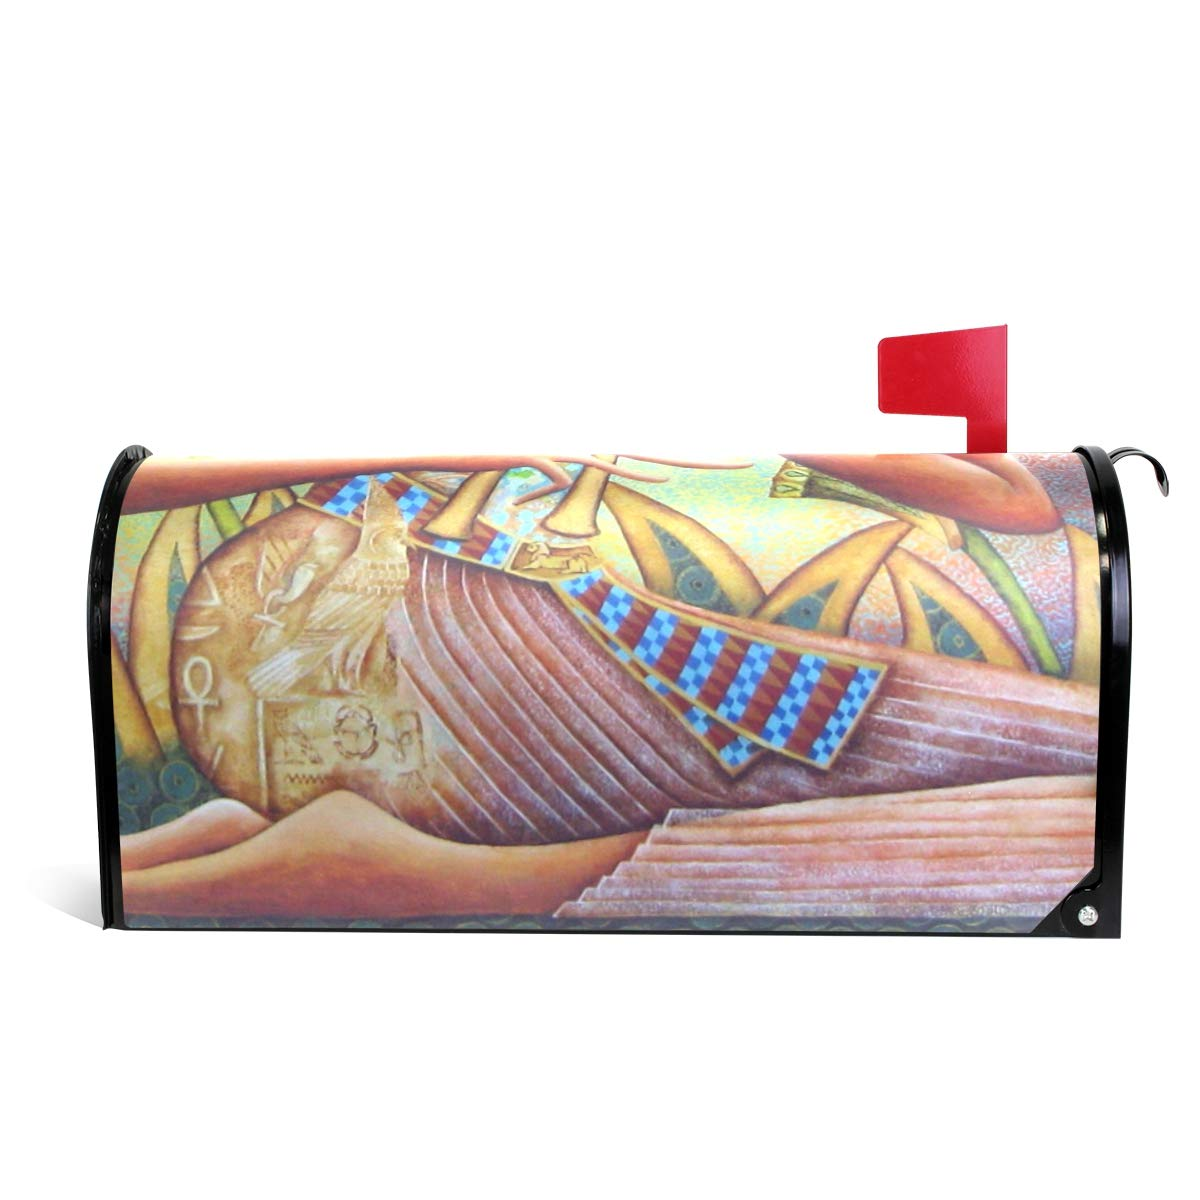 CiCily Magnetic Mailbox Cover Egypt Woman Decoration for House Garden by CiCily